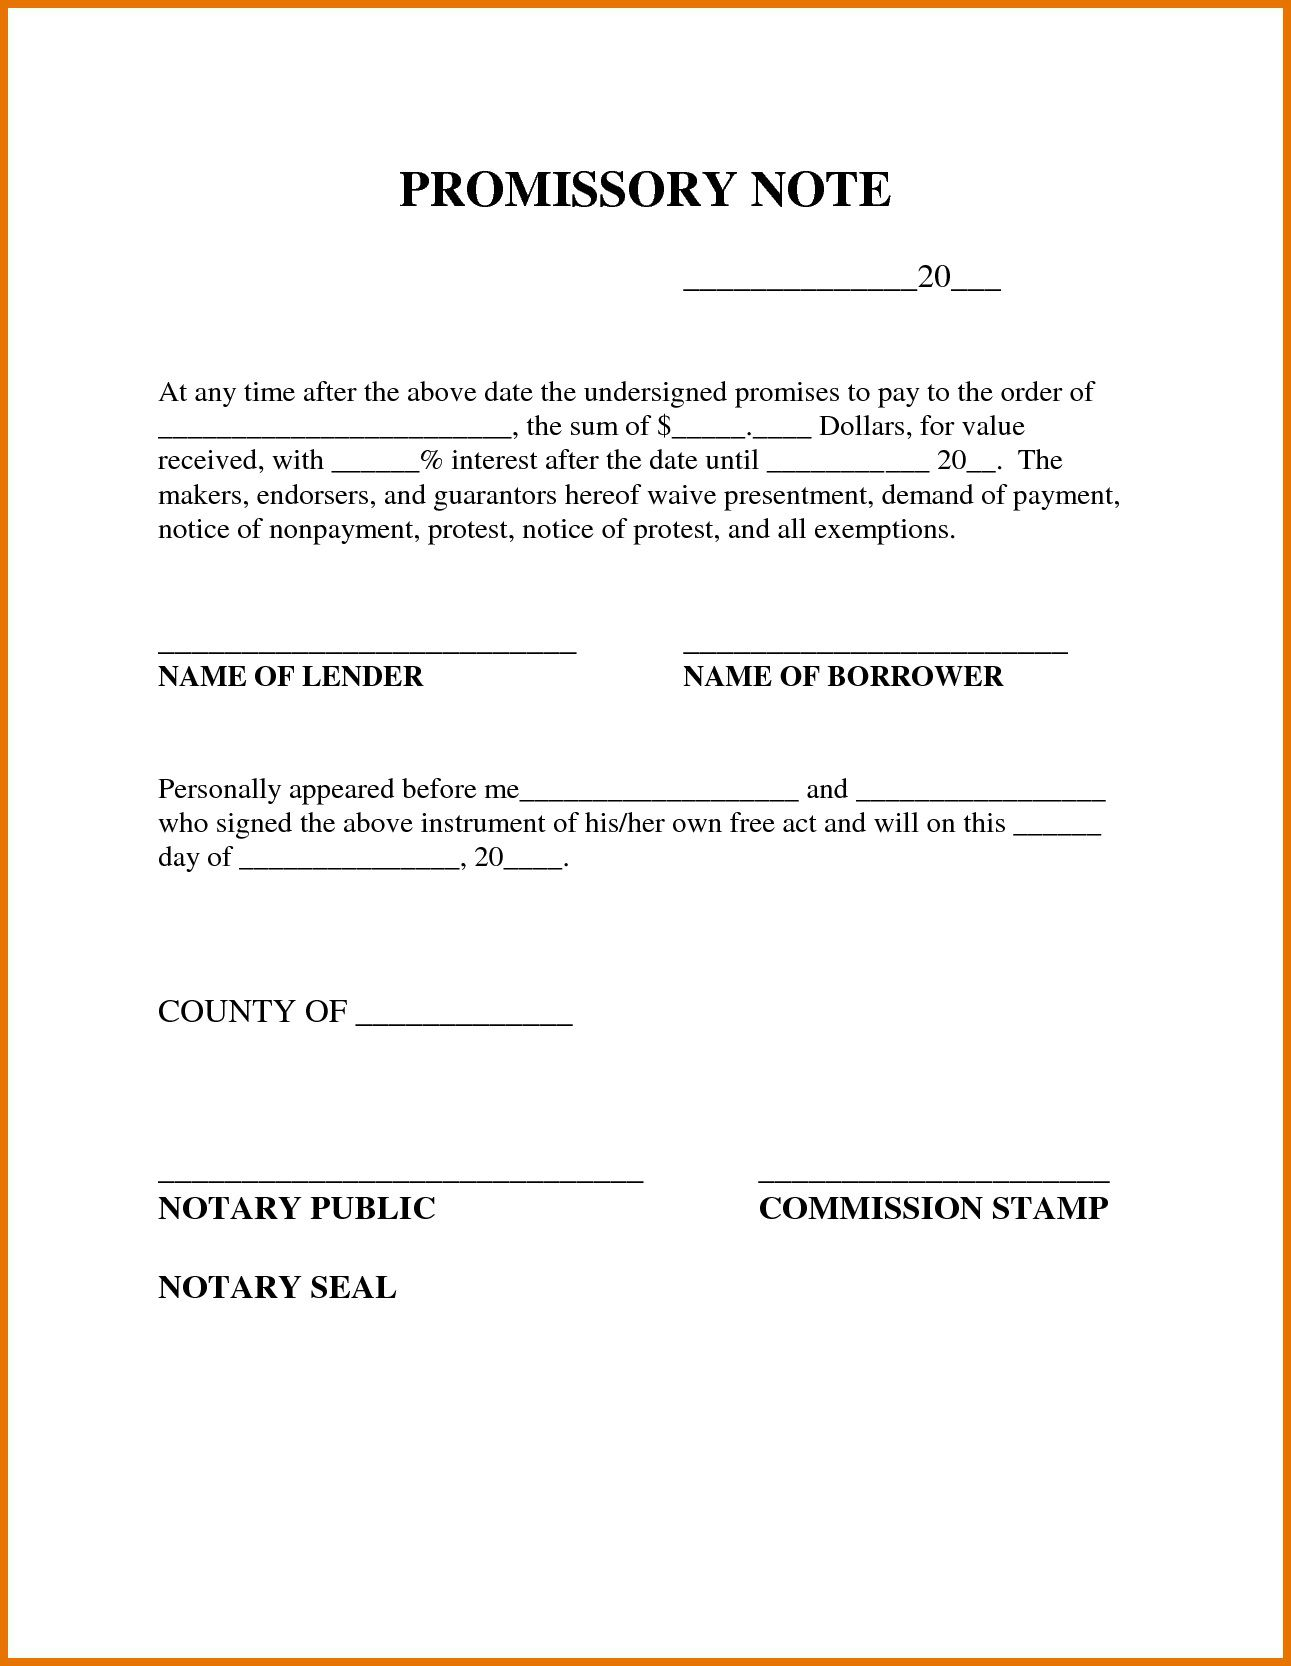 009 Outstanding Simple Promissory Note Template Image  Form Sample Format Of In IndiaFull